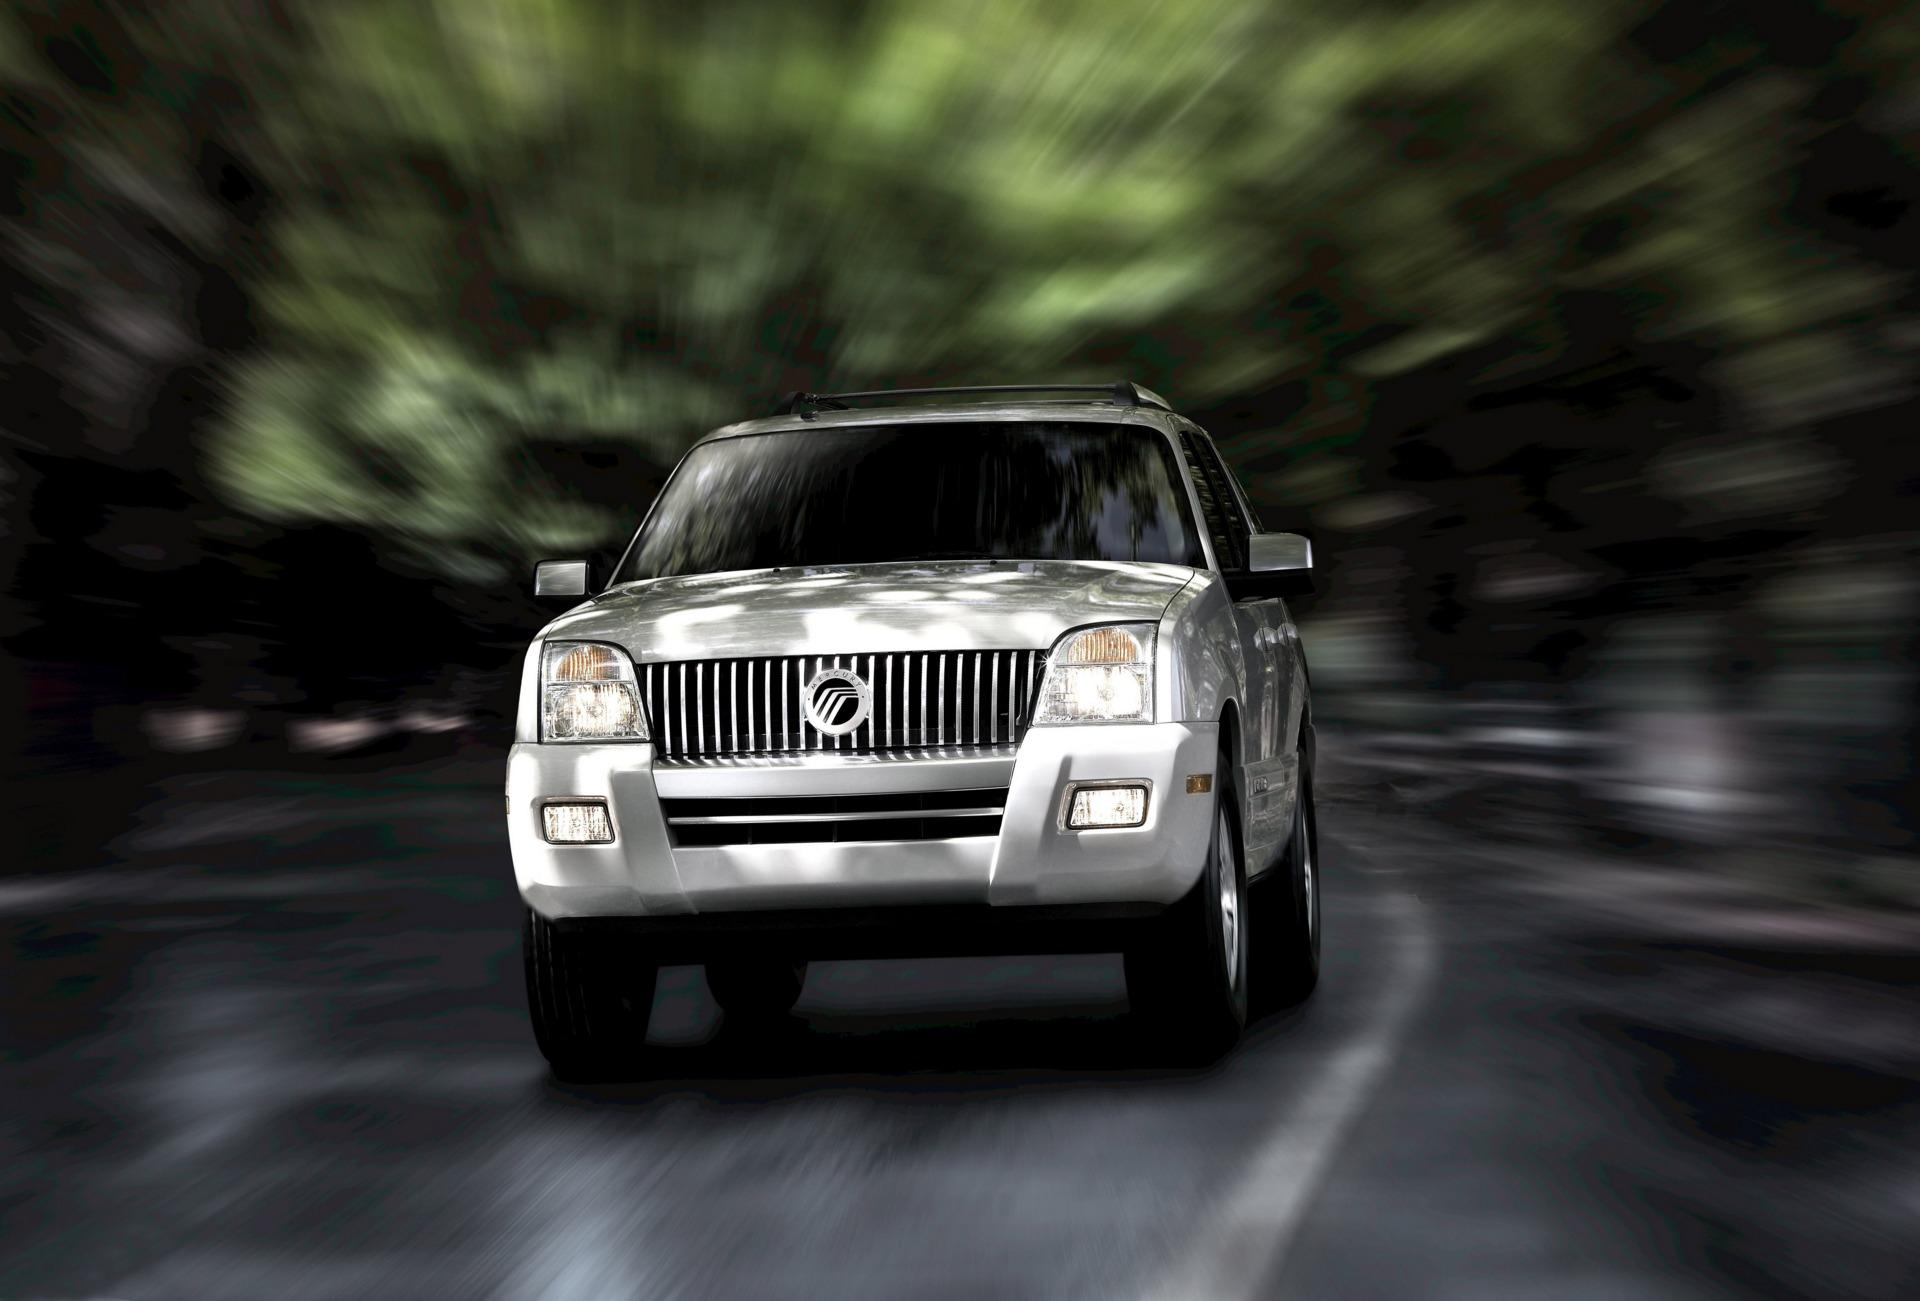 Wallpaper Muscle Cars Free 2009 Mercury Mountaineer Conceptcarz Com